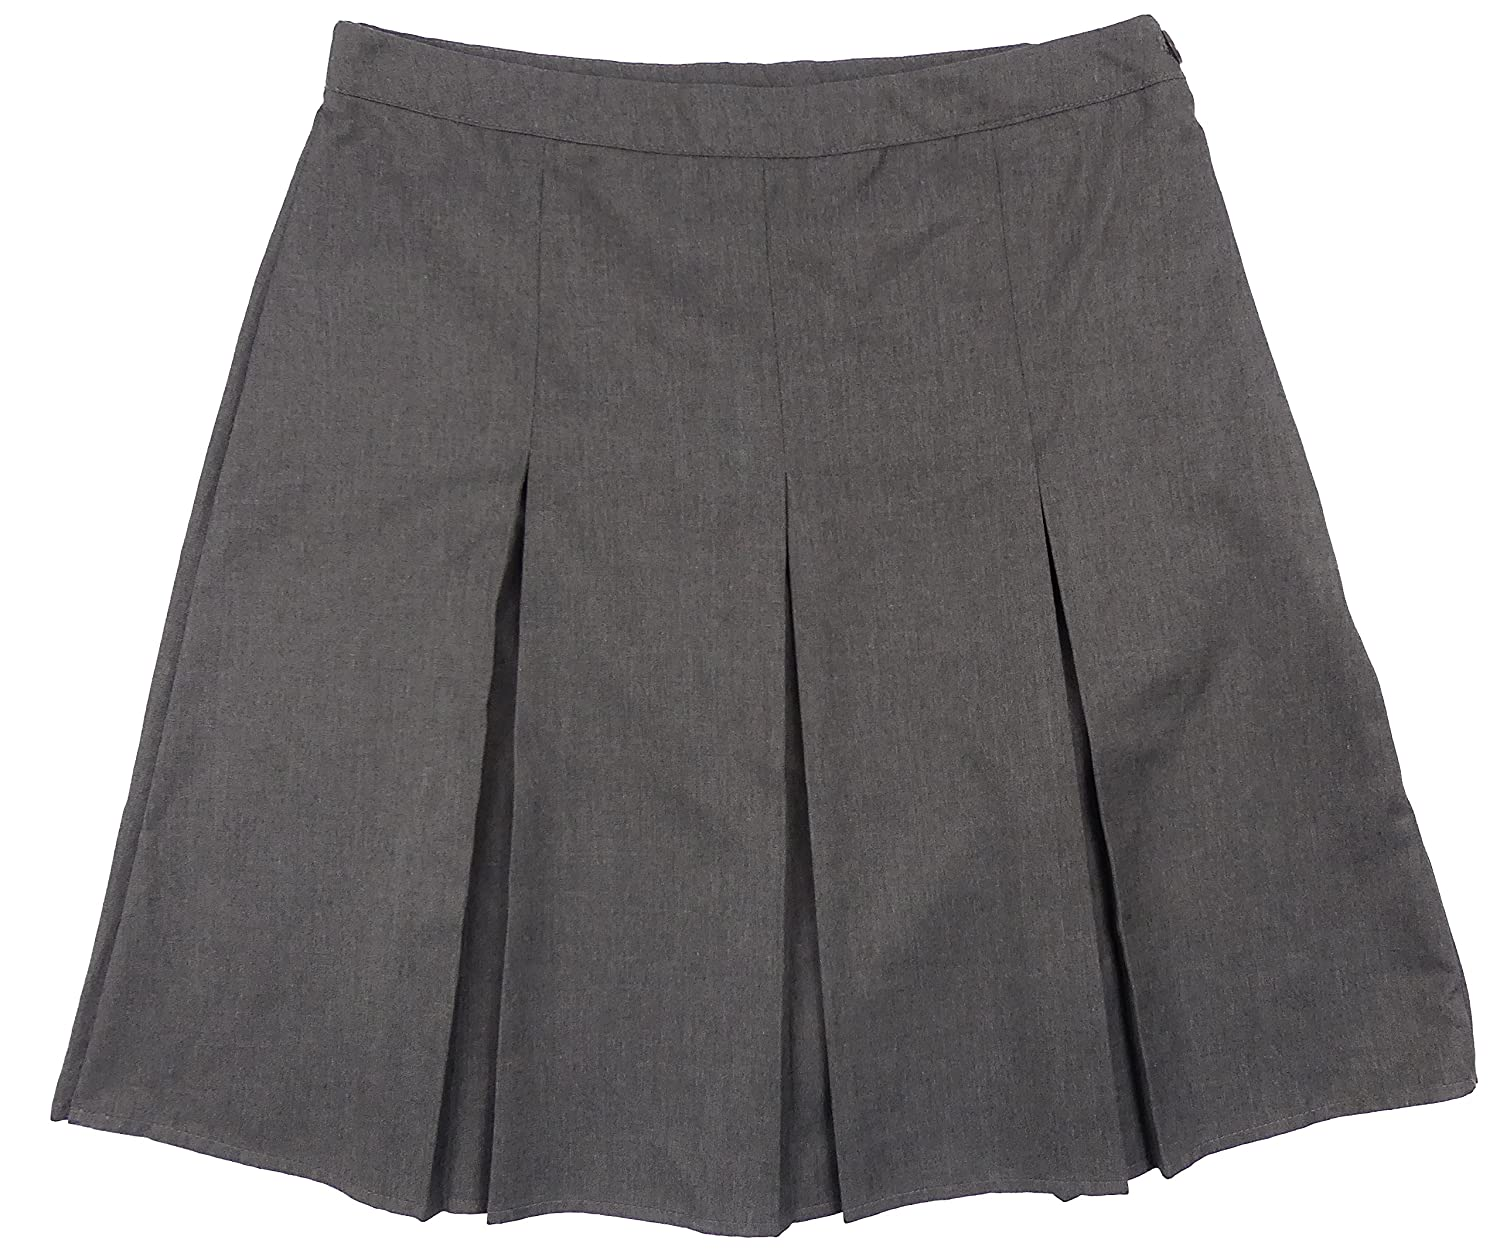 Exstore Sold By The Pyjama Party Girls Grey School Skirt with Adjusatbel Waist